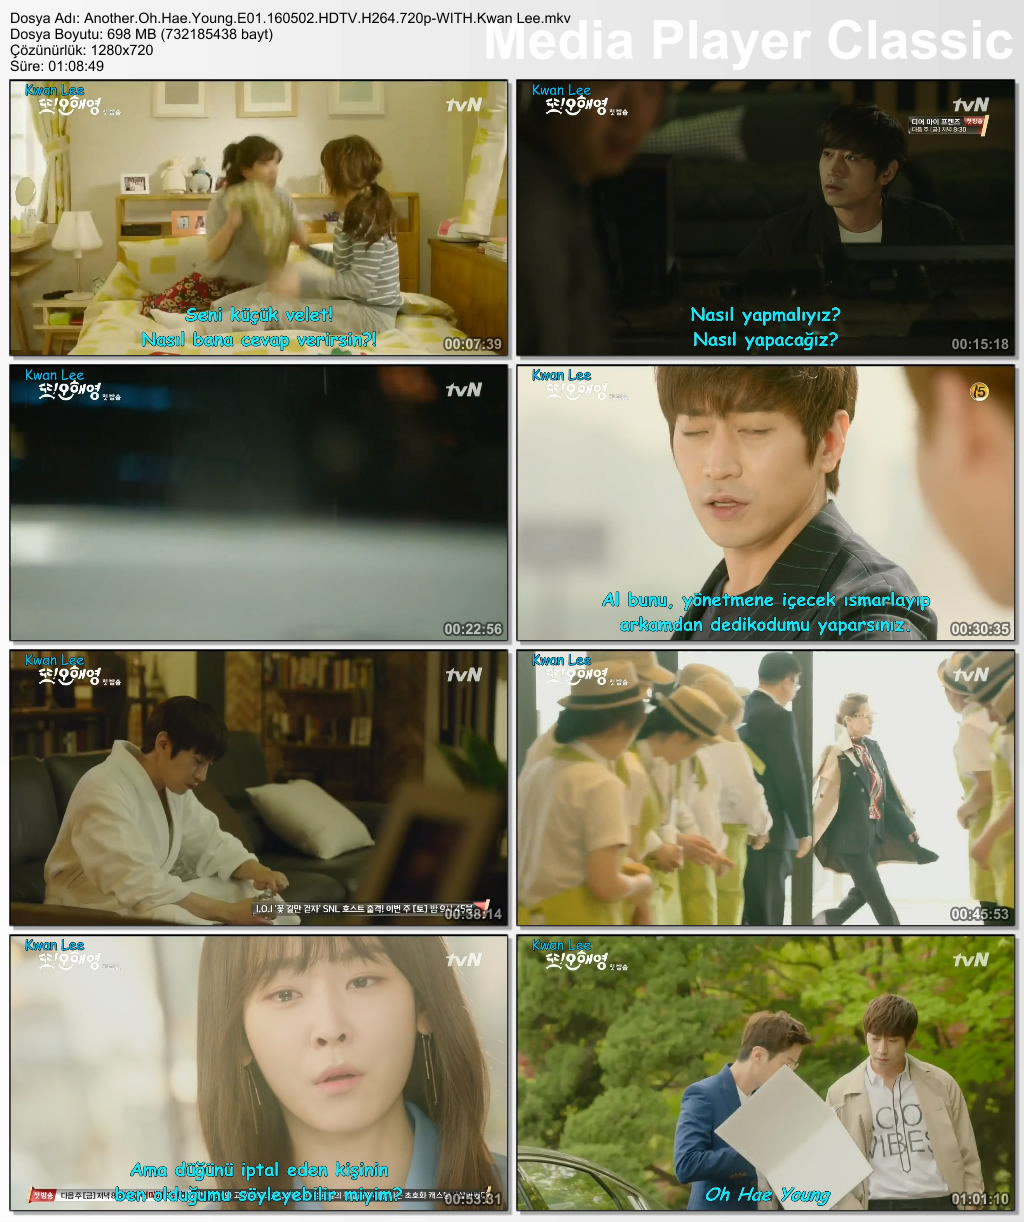 [Resim: Another.Oh.Hae.Young.E01.160502.HDTV.H26....43%5D.jpg]